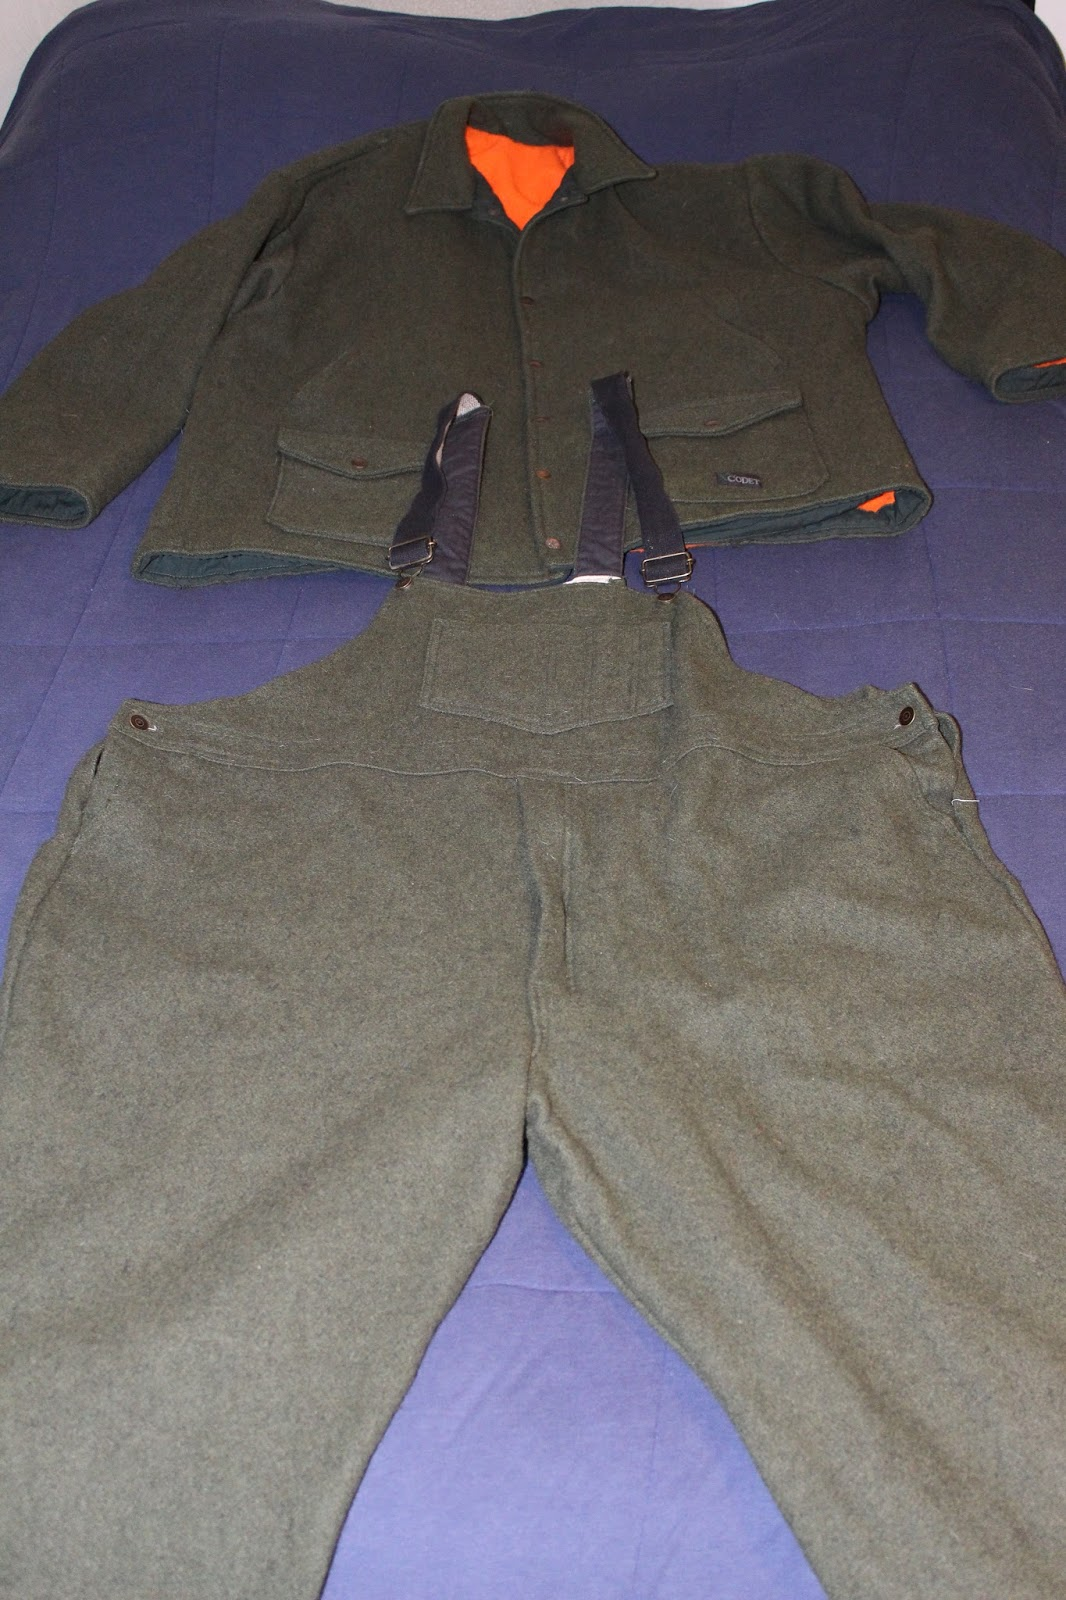 e3ecb5fd97cbc Codet Hunters Wool Coat and Bibs Size 3xl | Bushcraft USA Forums